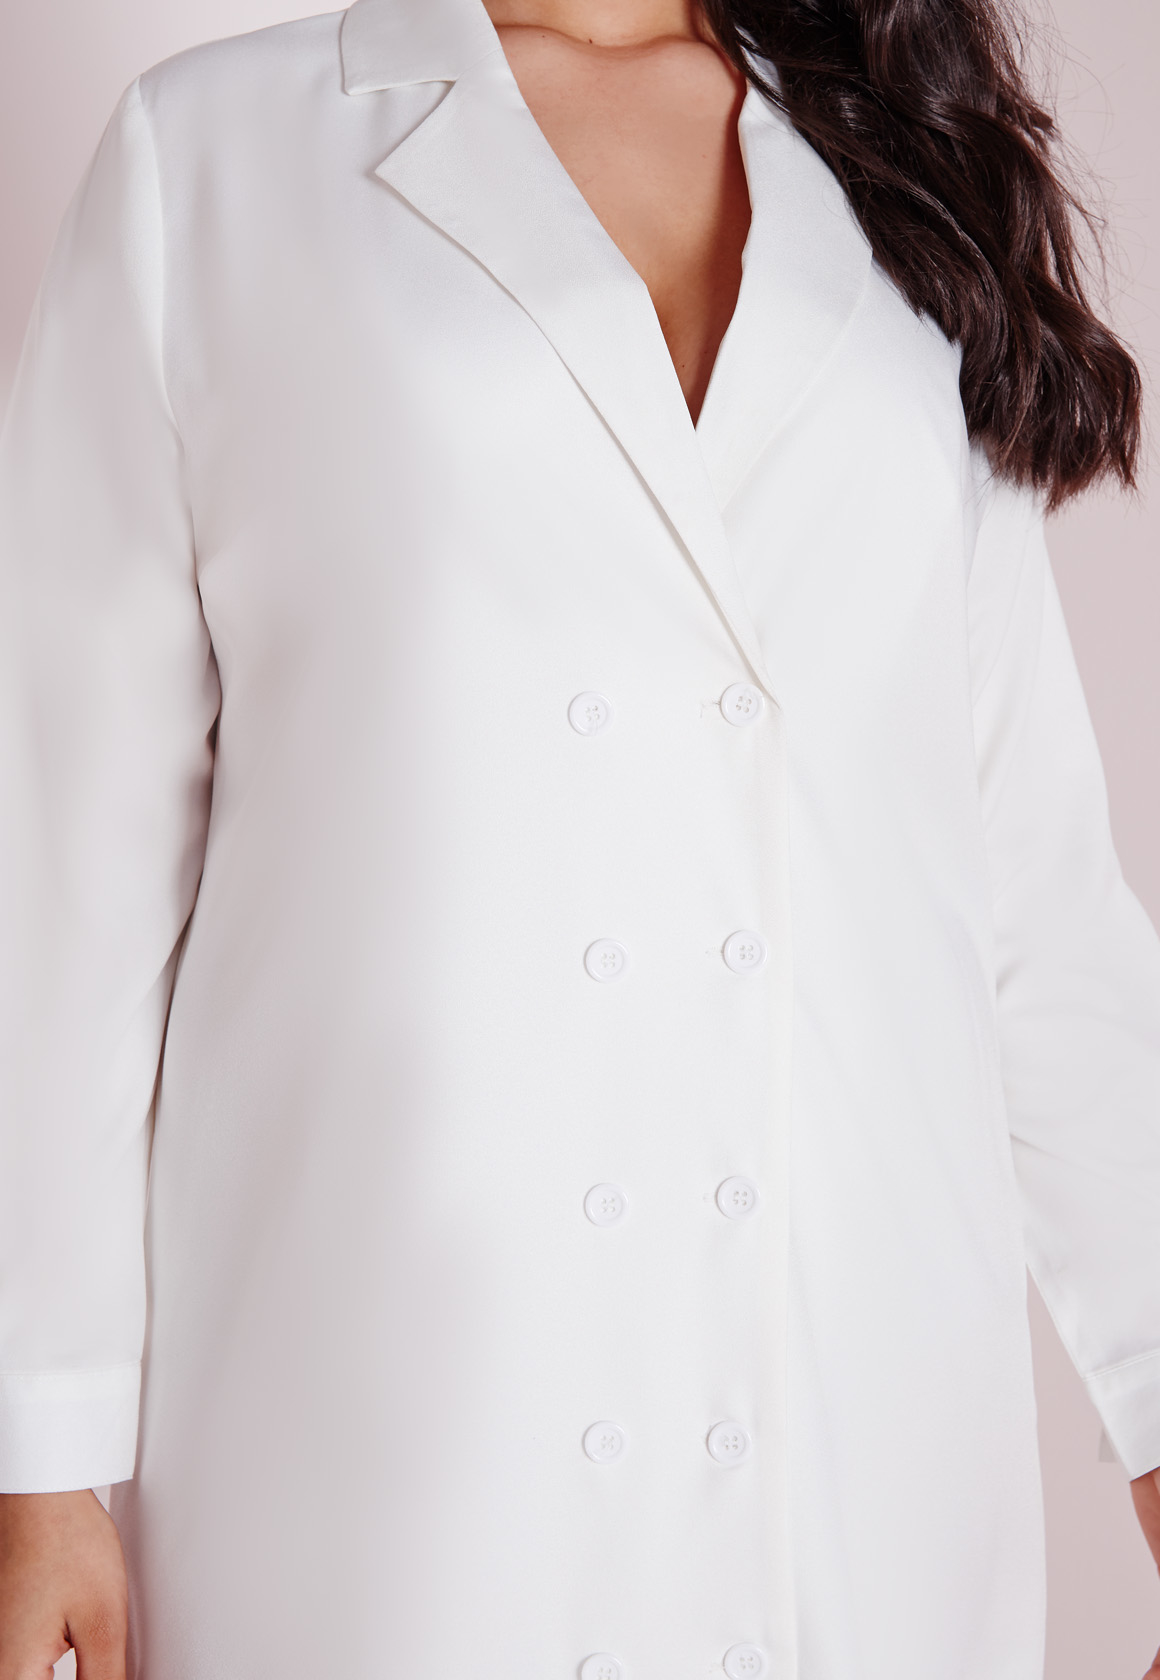 Lyst missguided plus size tuxedo shirt dress white in white for White shirt for tuxedo